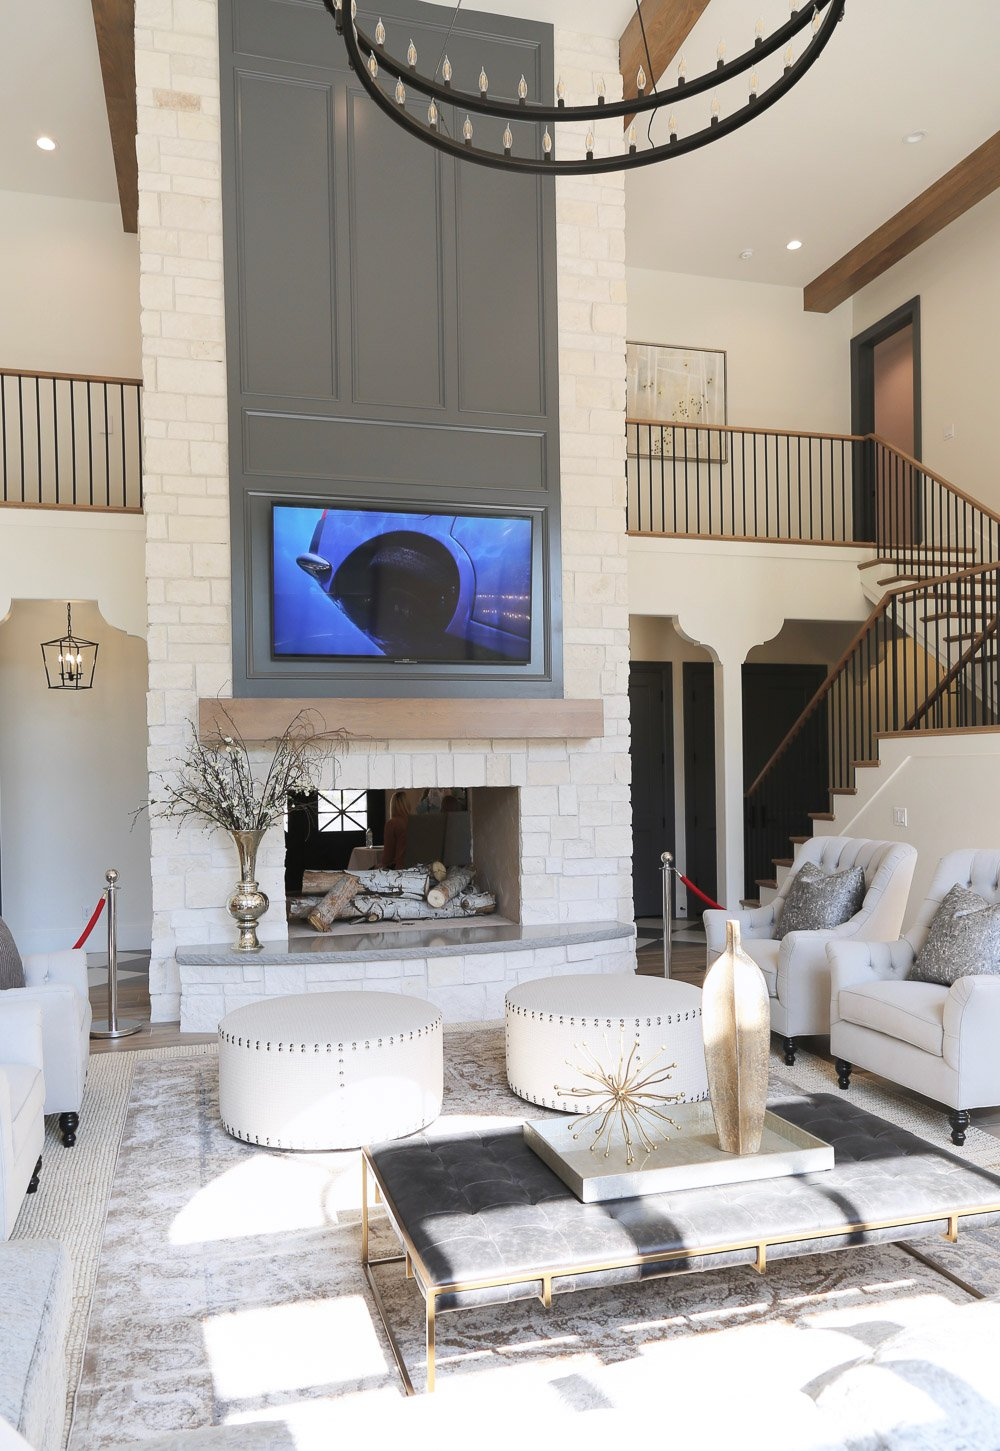 Fireplace paint color is Benjamin Moore Trout Gray